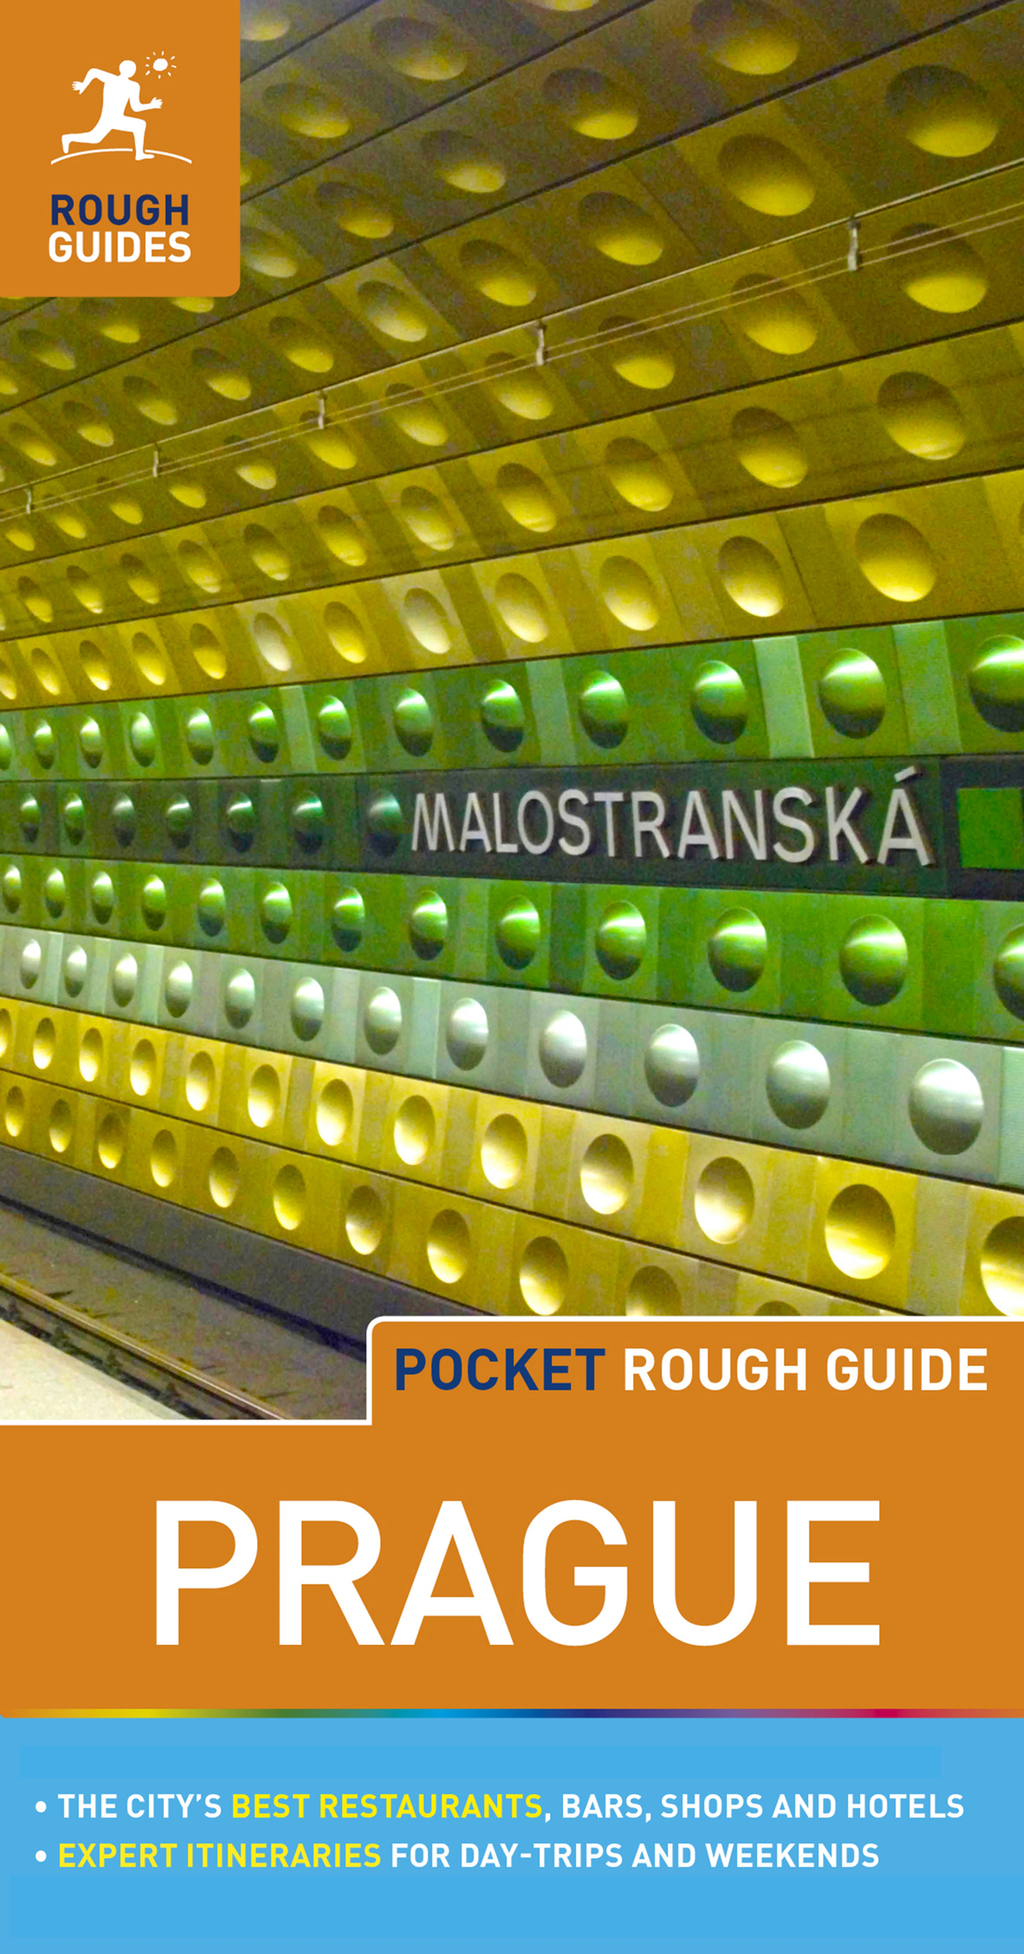 Pocket Rough Guide Prague